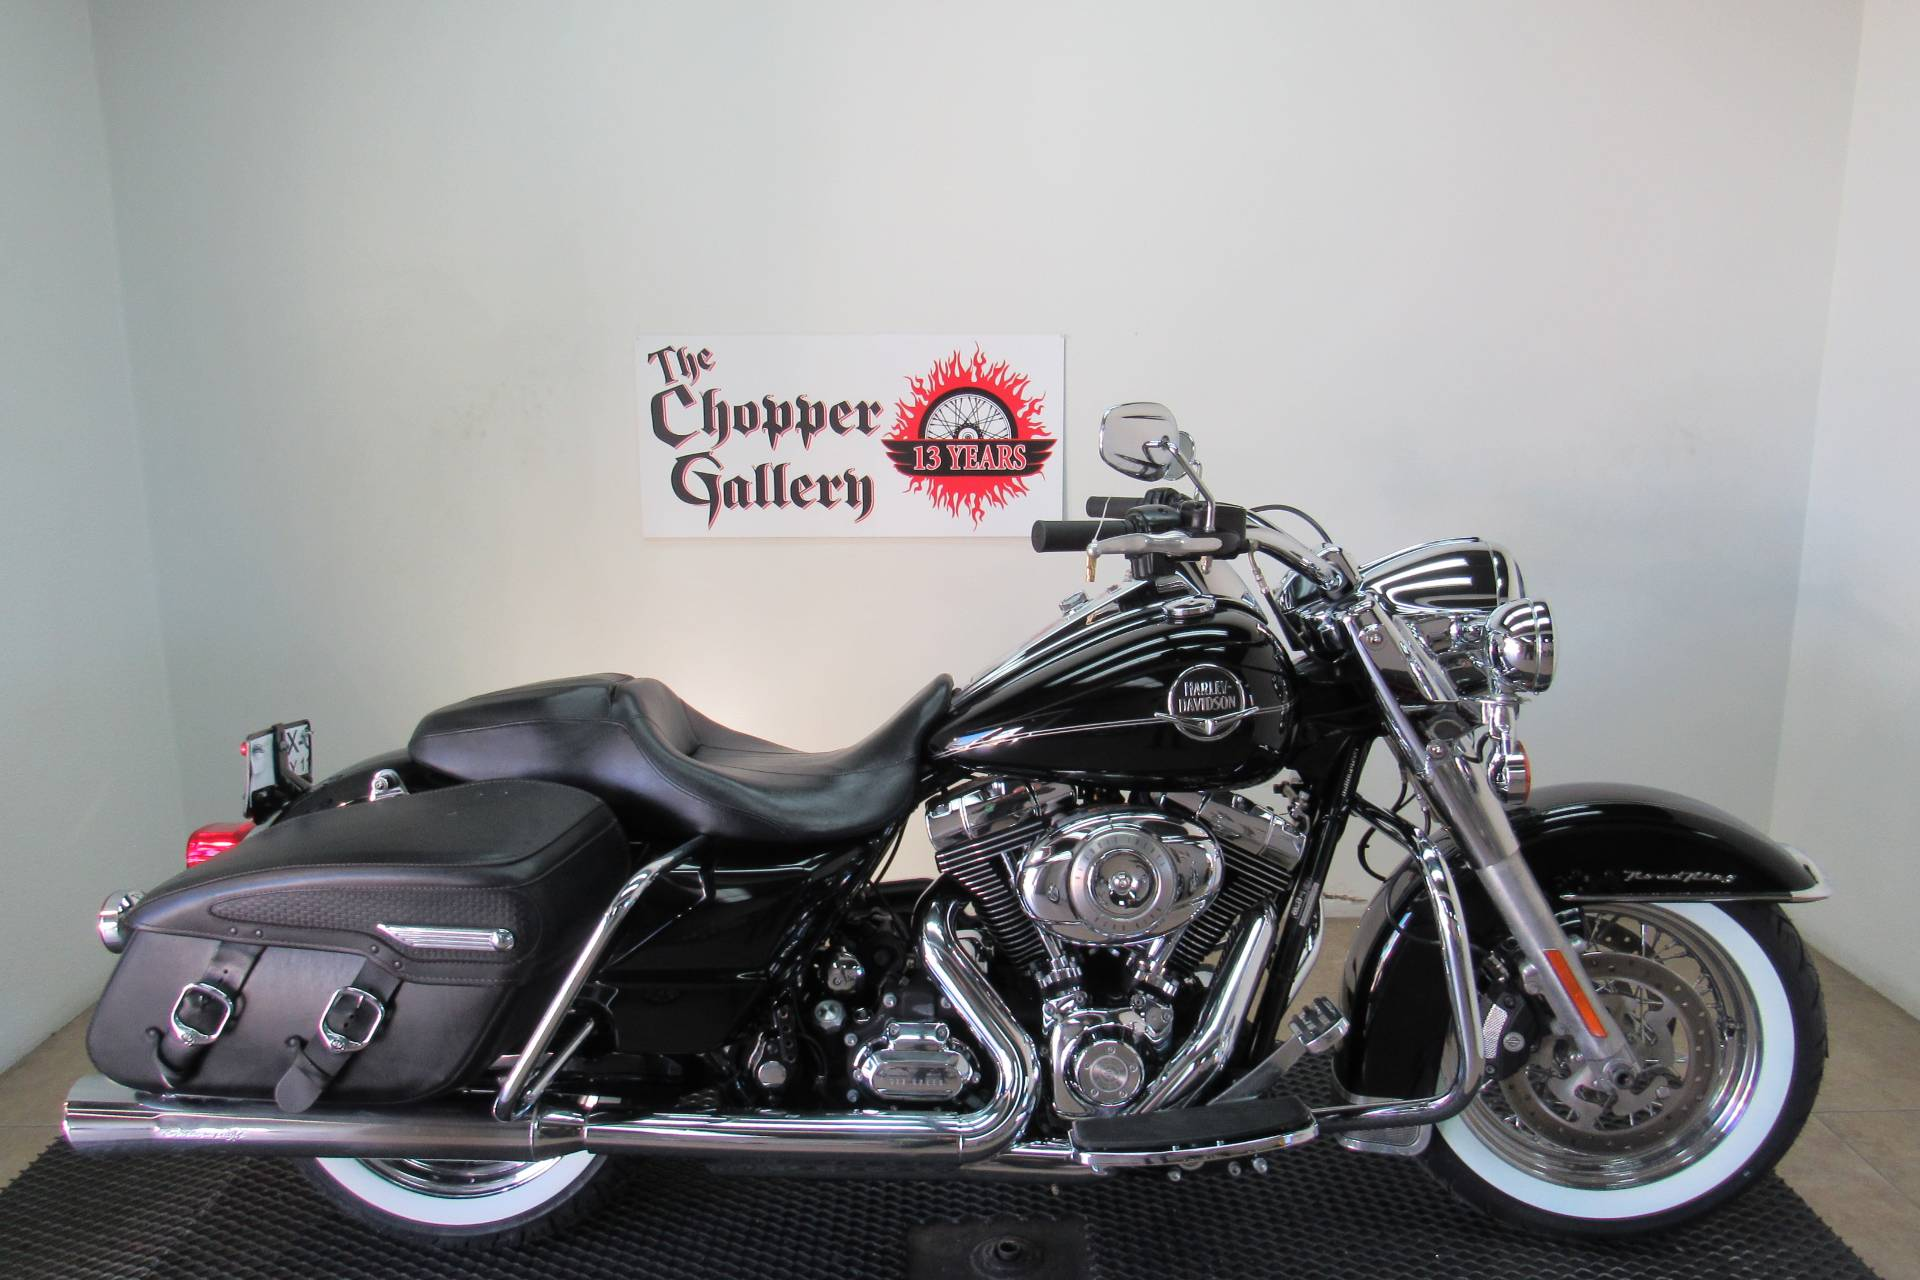 Used 2010 Harley Davidson Road King Classic Motorcycles In Temecula Ca Stock Number V0666624